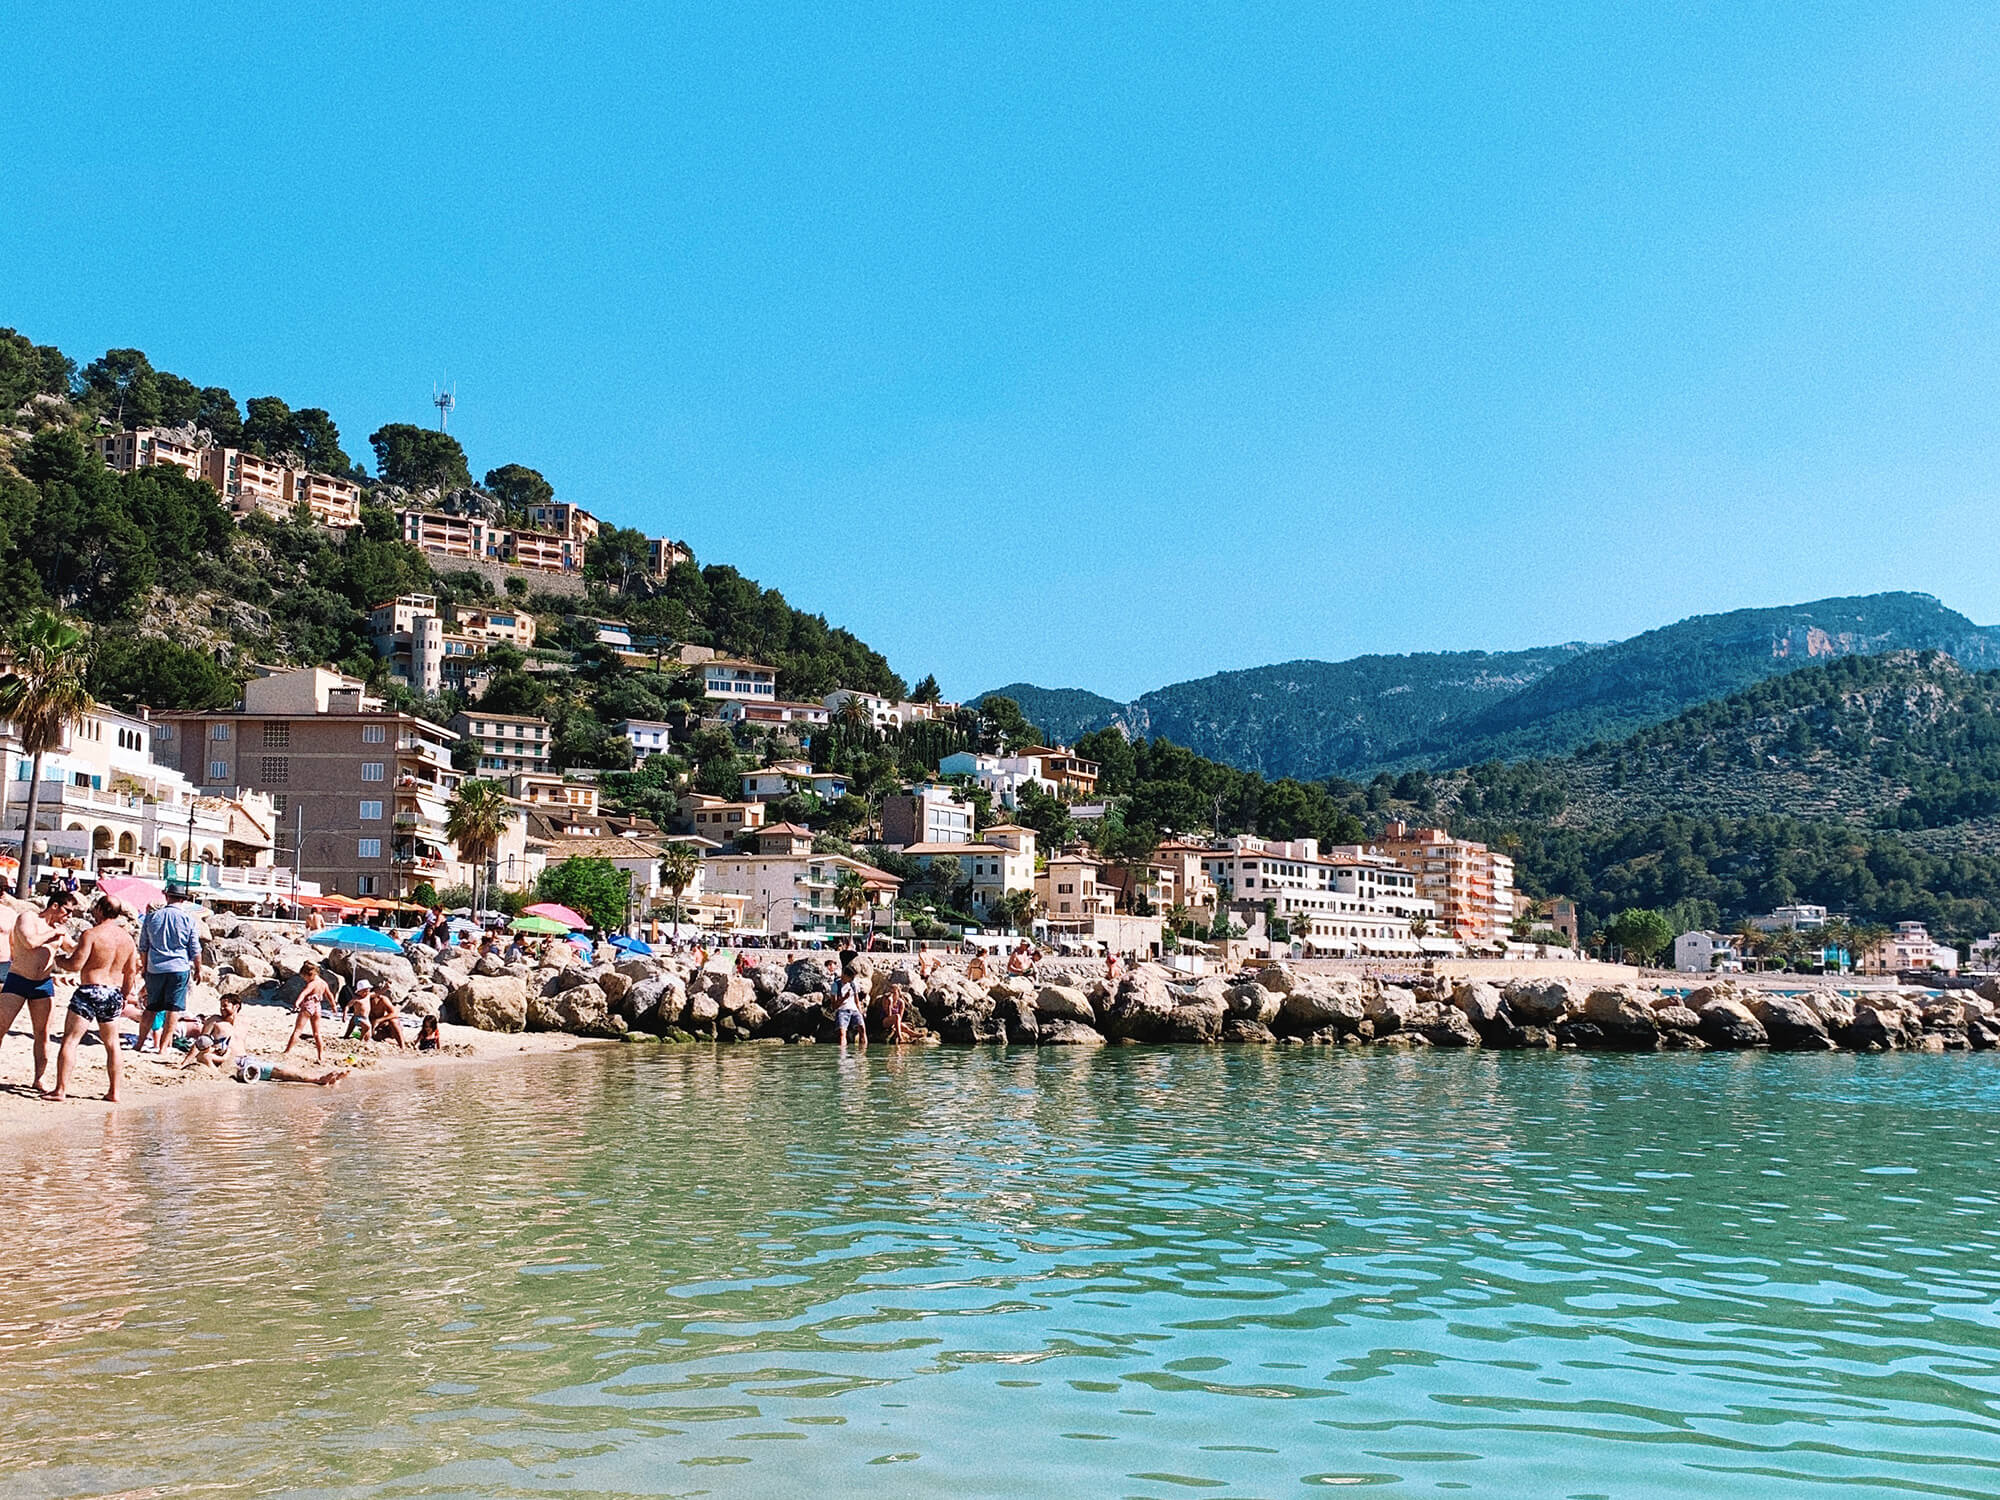 Mallorca travel guide, Port de Soller, best beach in Mallorca